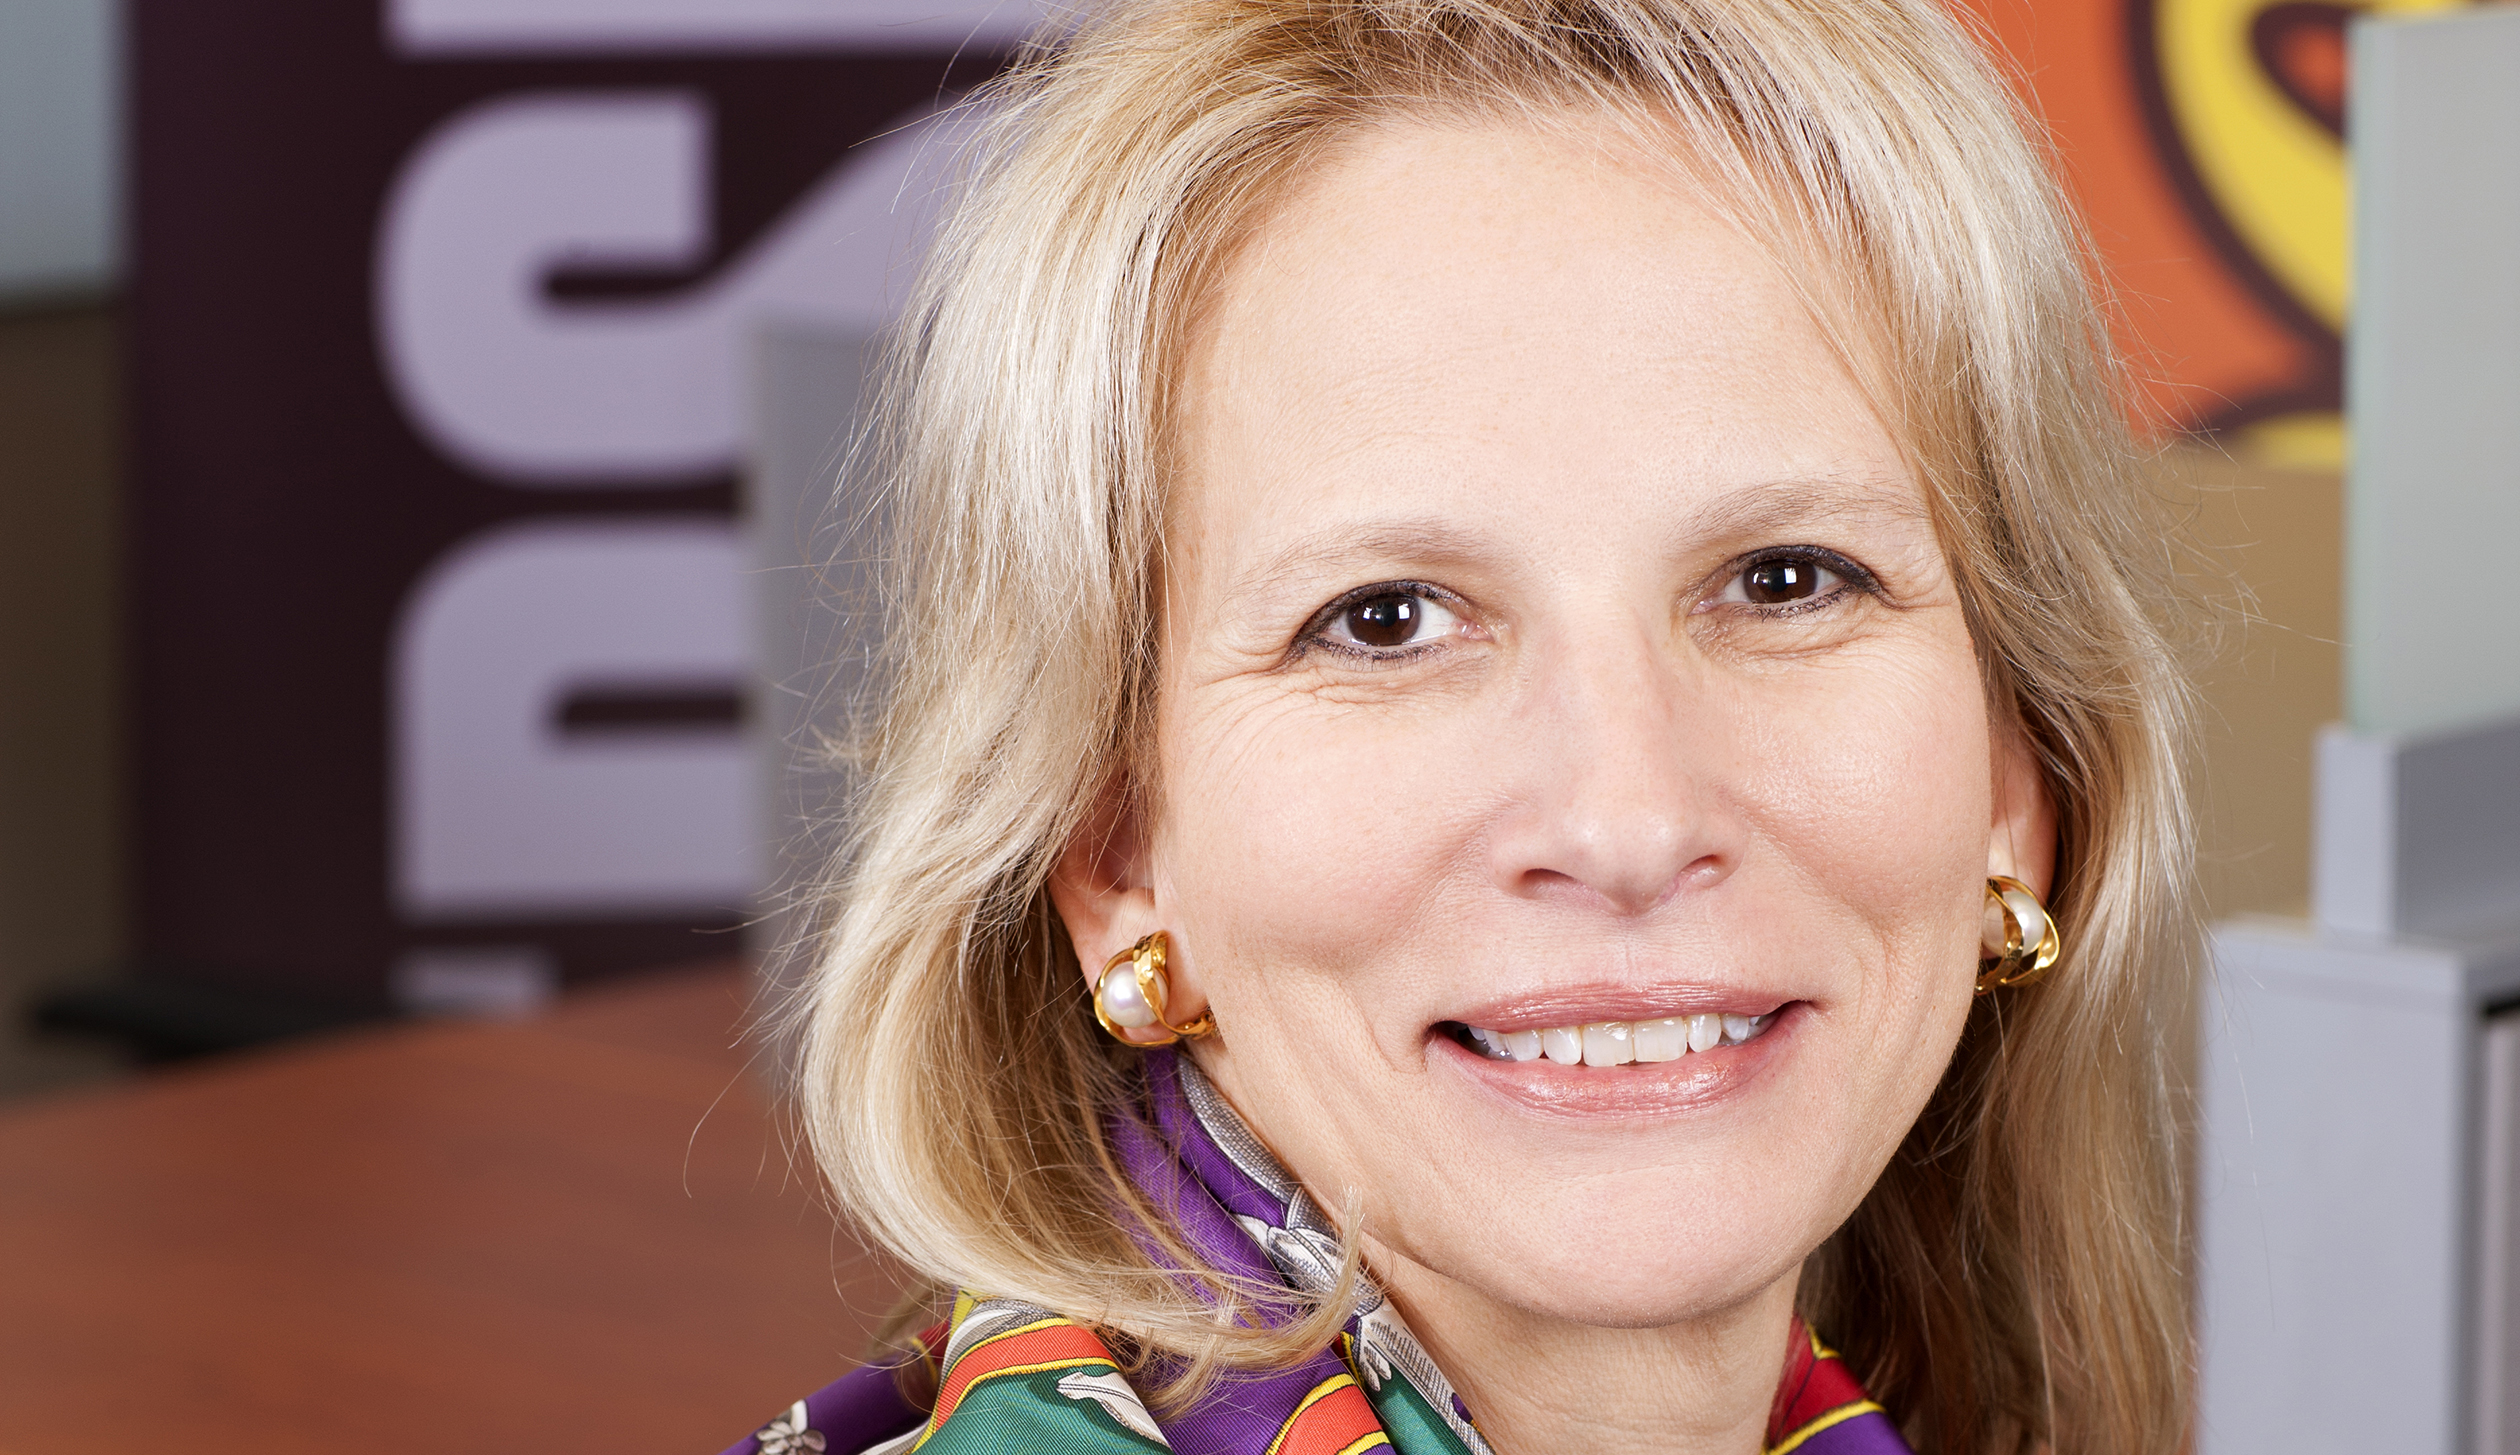 The Hershey Company today announced that its Board of Directors has appointed Michele Buck, currently the company's Executive Vice President and Chief Operating Officer, as Hershey's next President and Chief Executive Officer effective March 1, 2017.